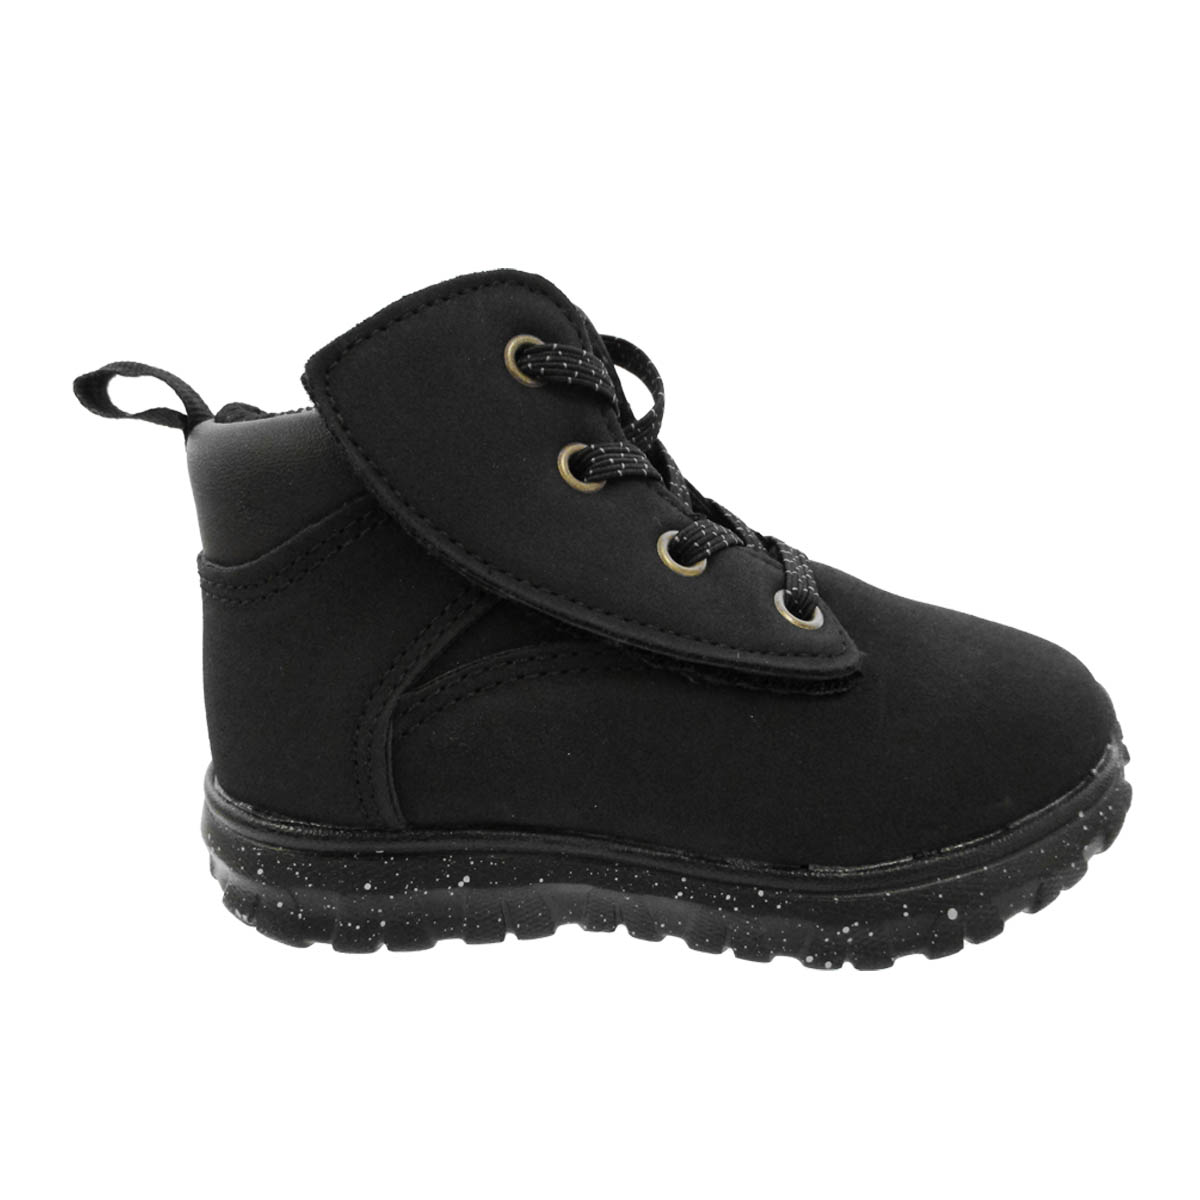 Toddler Boys' Wonder Nation Tucker Boots